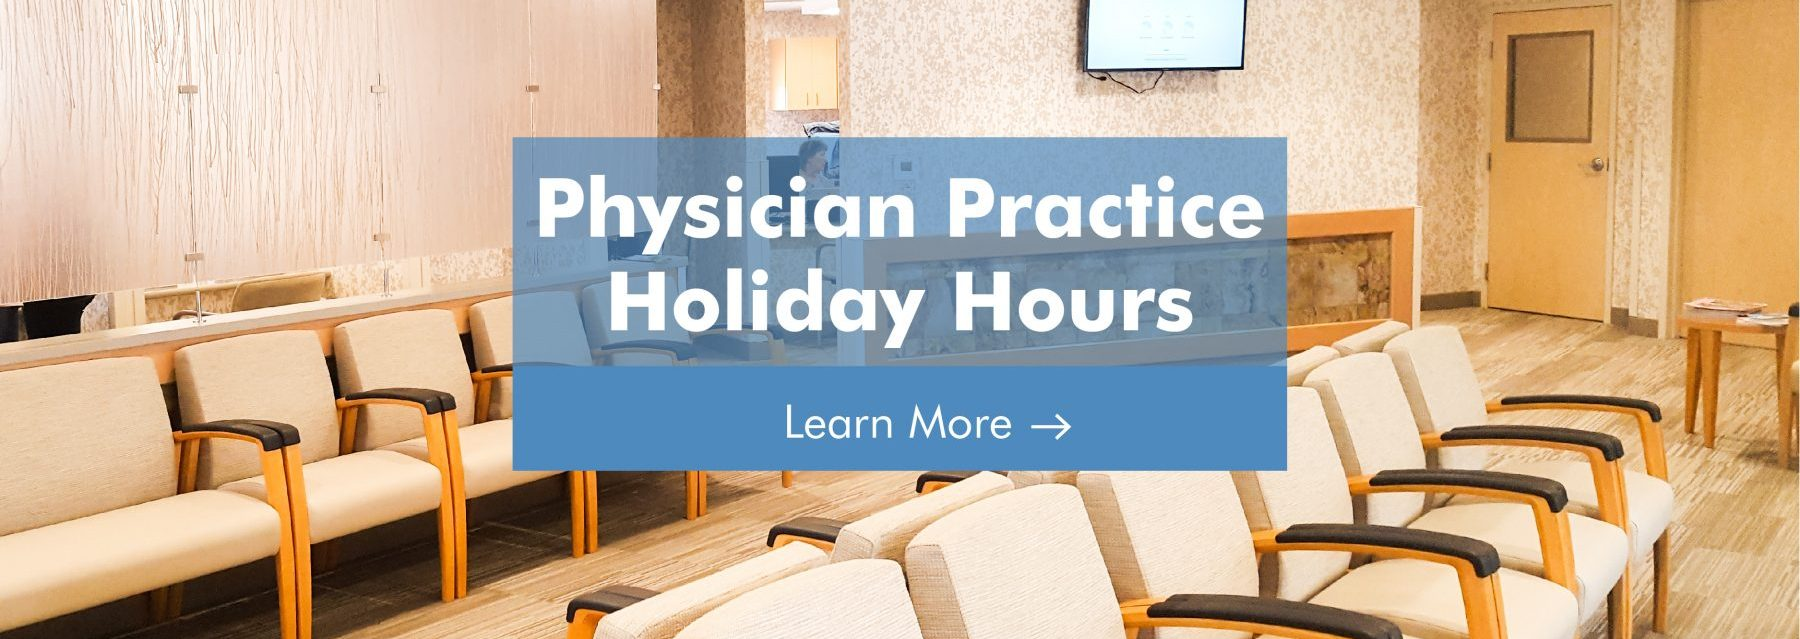 physician practice holiday hours